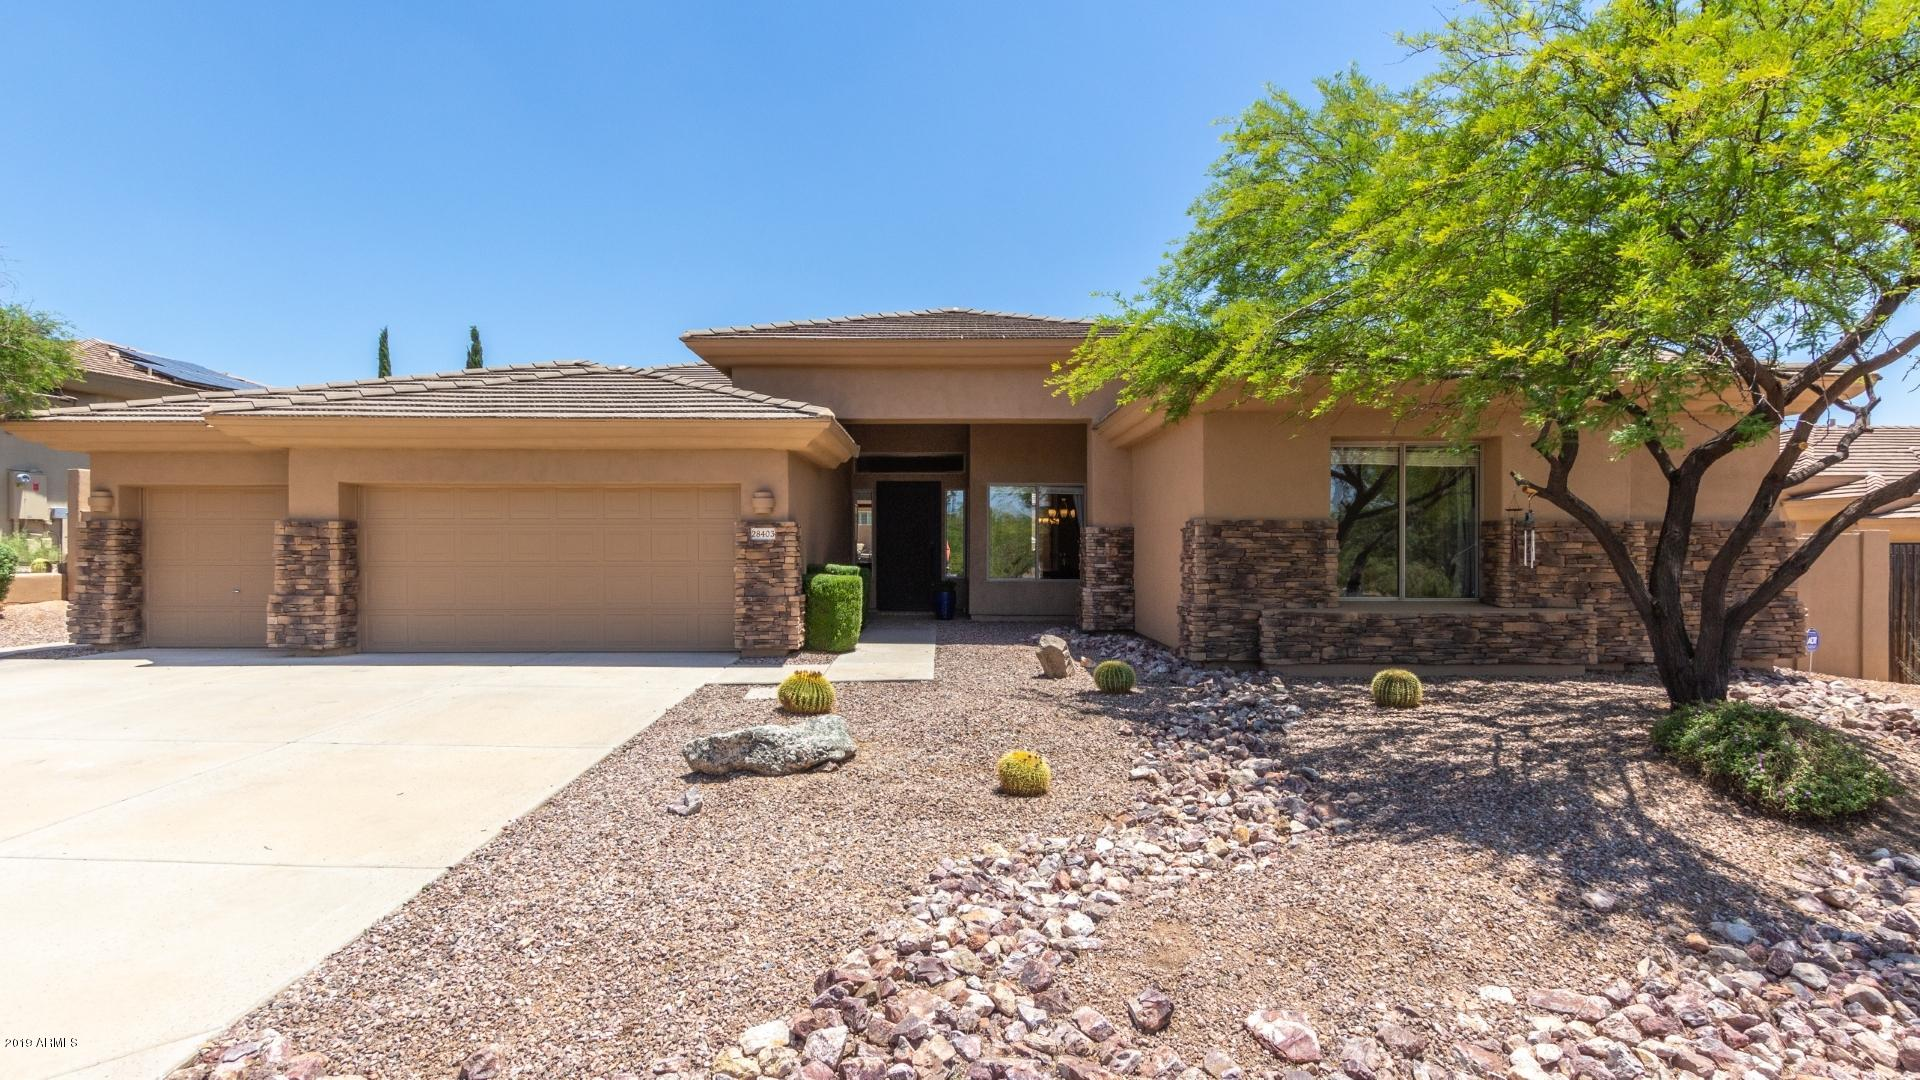 28403 N 114TH Place, Scottsdale AZ 85262